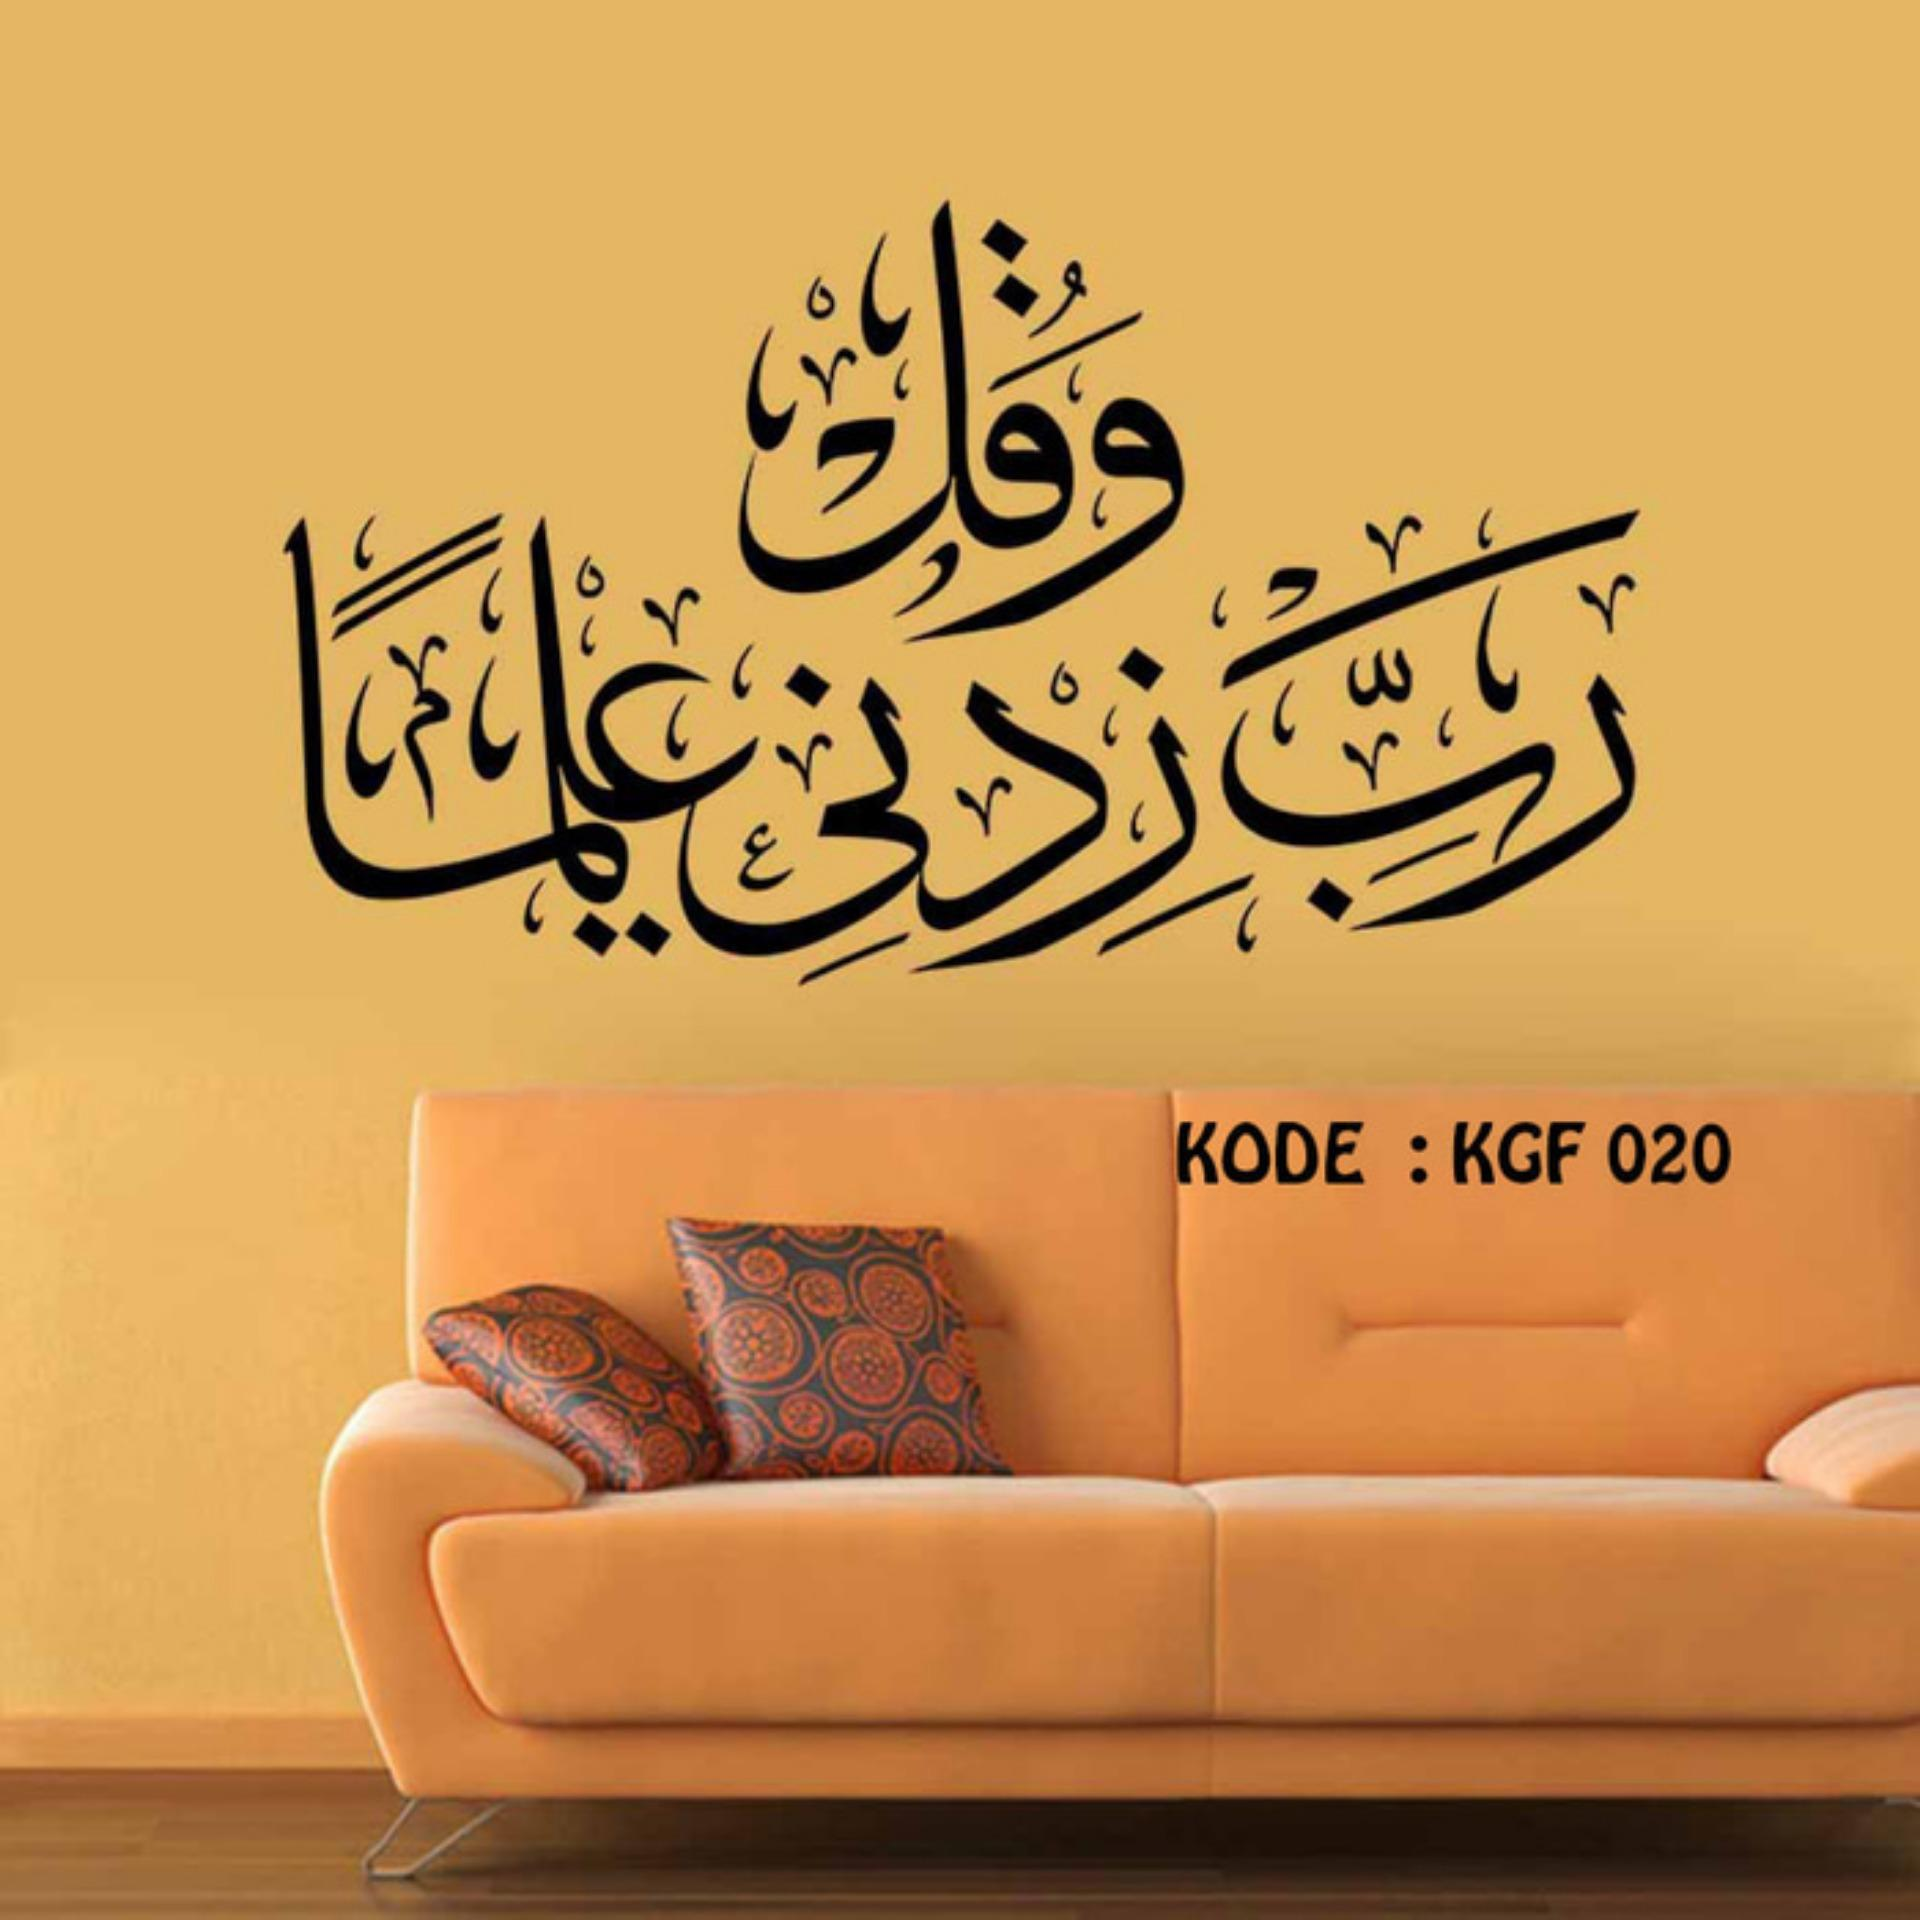 Harga Home Decor Wallsticker Stiker Dinding Kaligrafi Hitam Home Decor Online